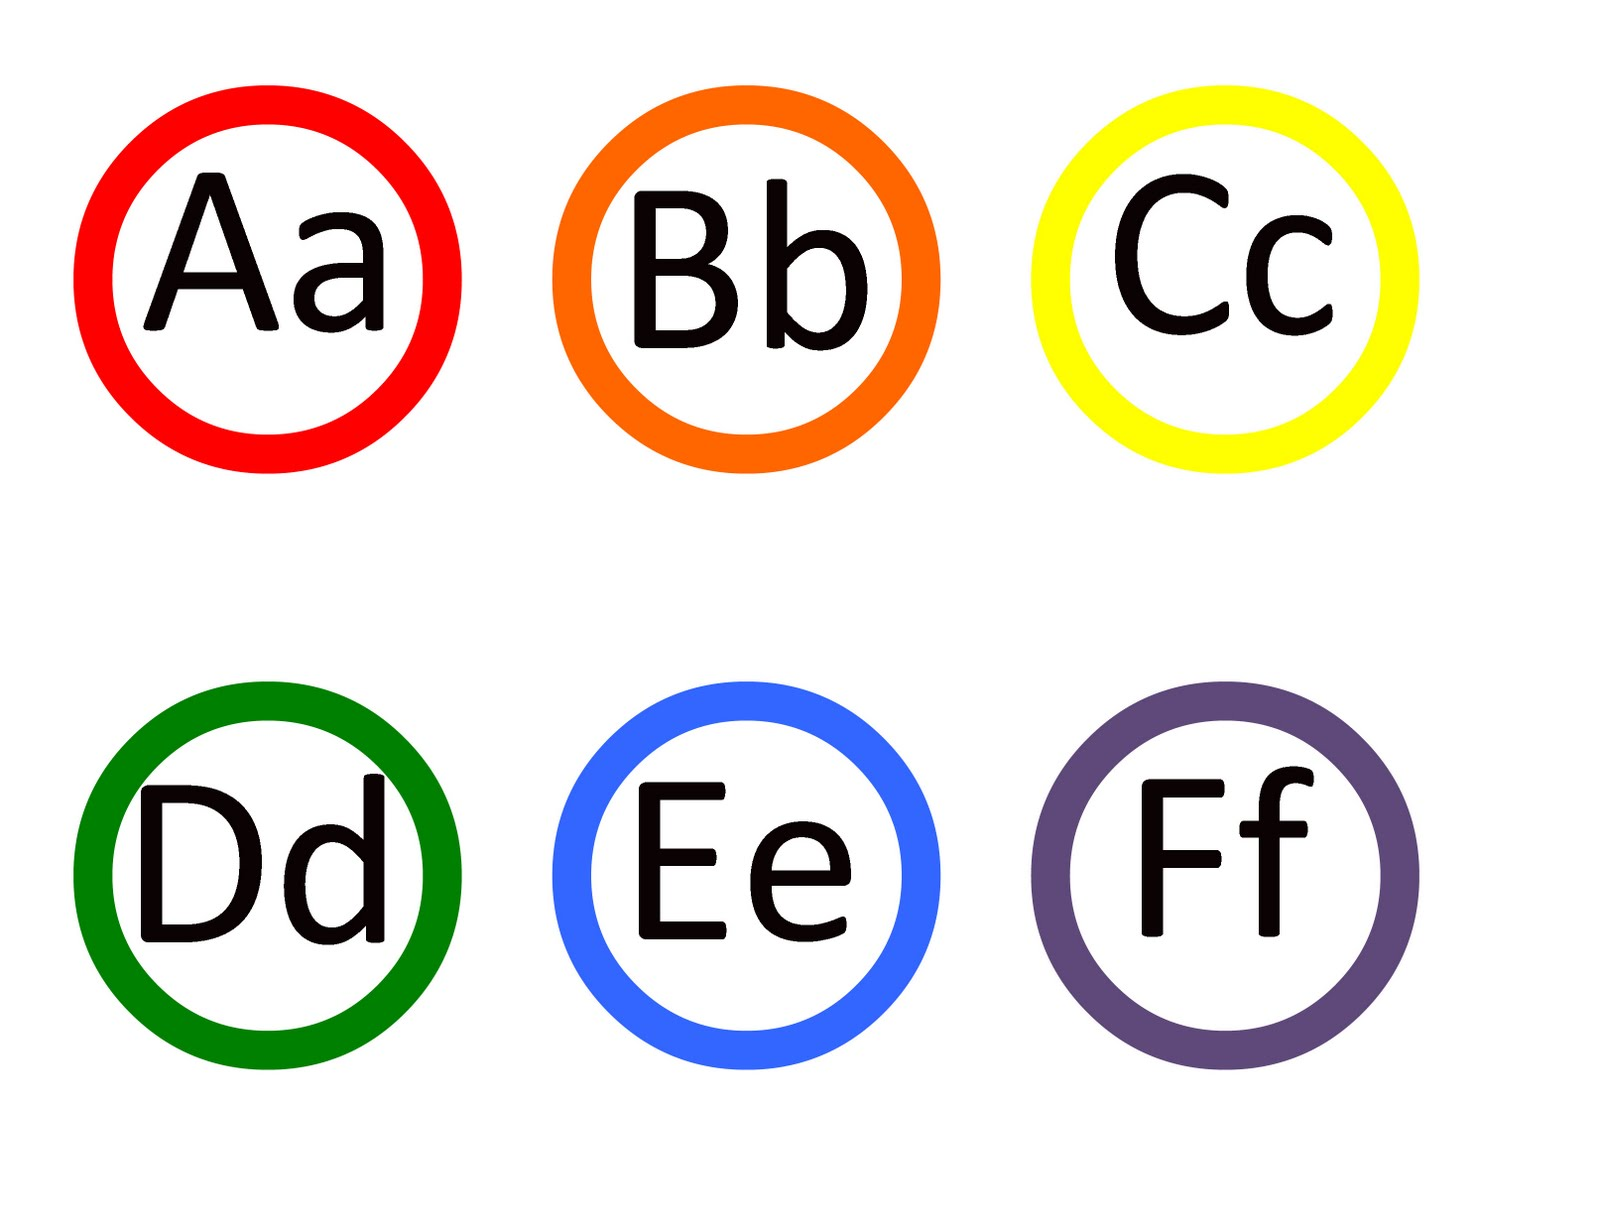 hight resolution of abc Caterpillar Printables (Revised)